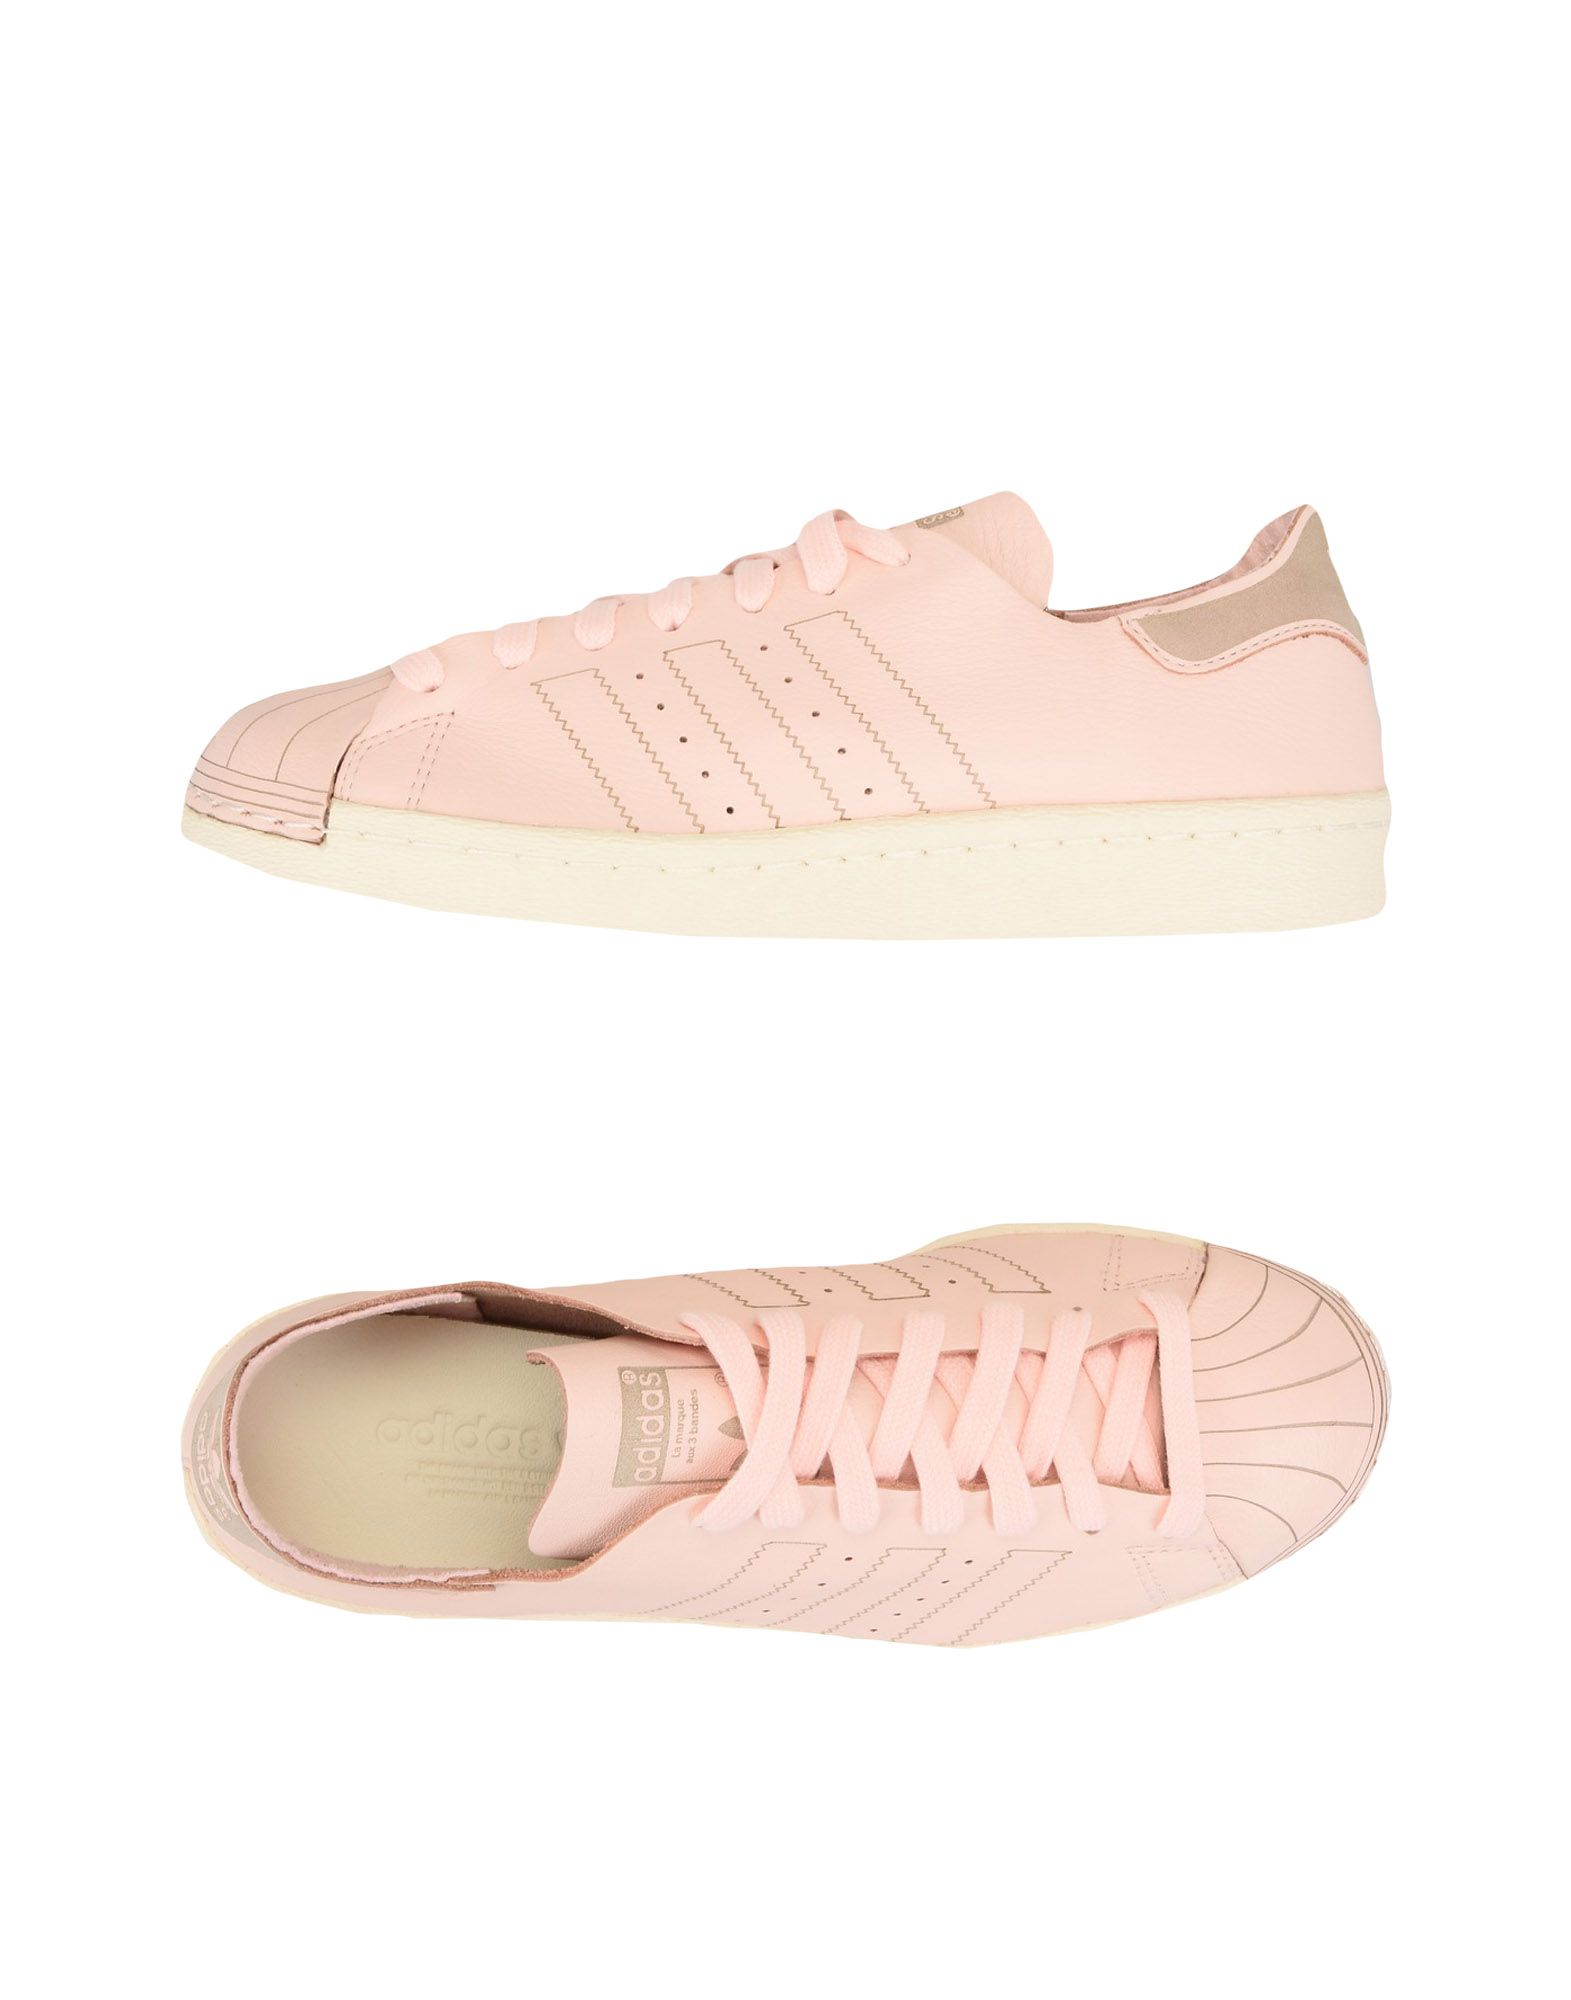 Sneakers Adidas Originals Superstar 80S Decon - Femme - Sneakers Adidas Originals sur